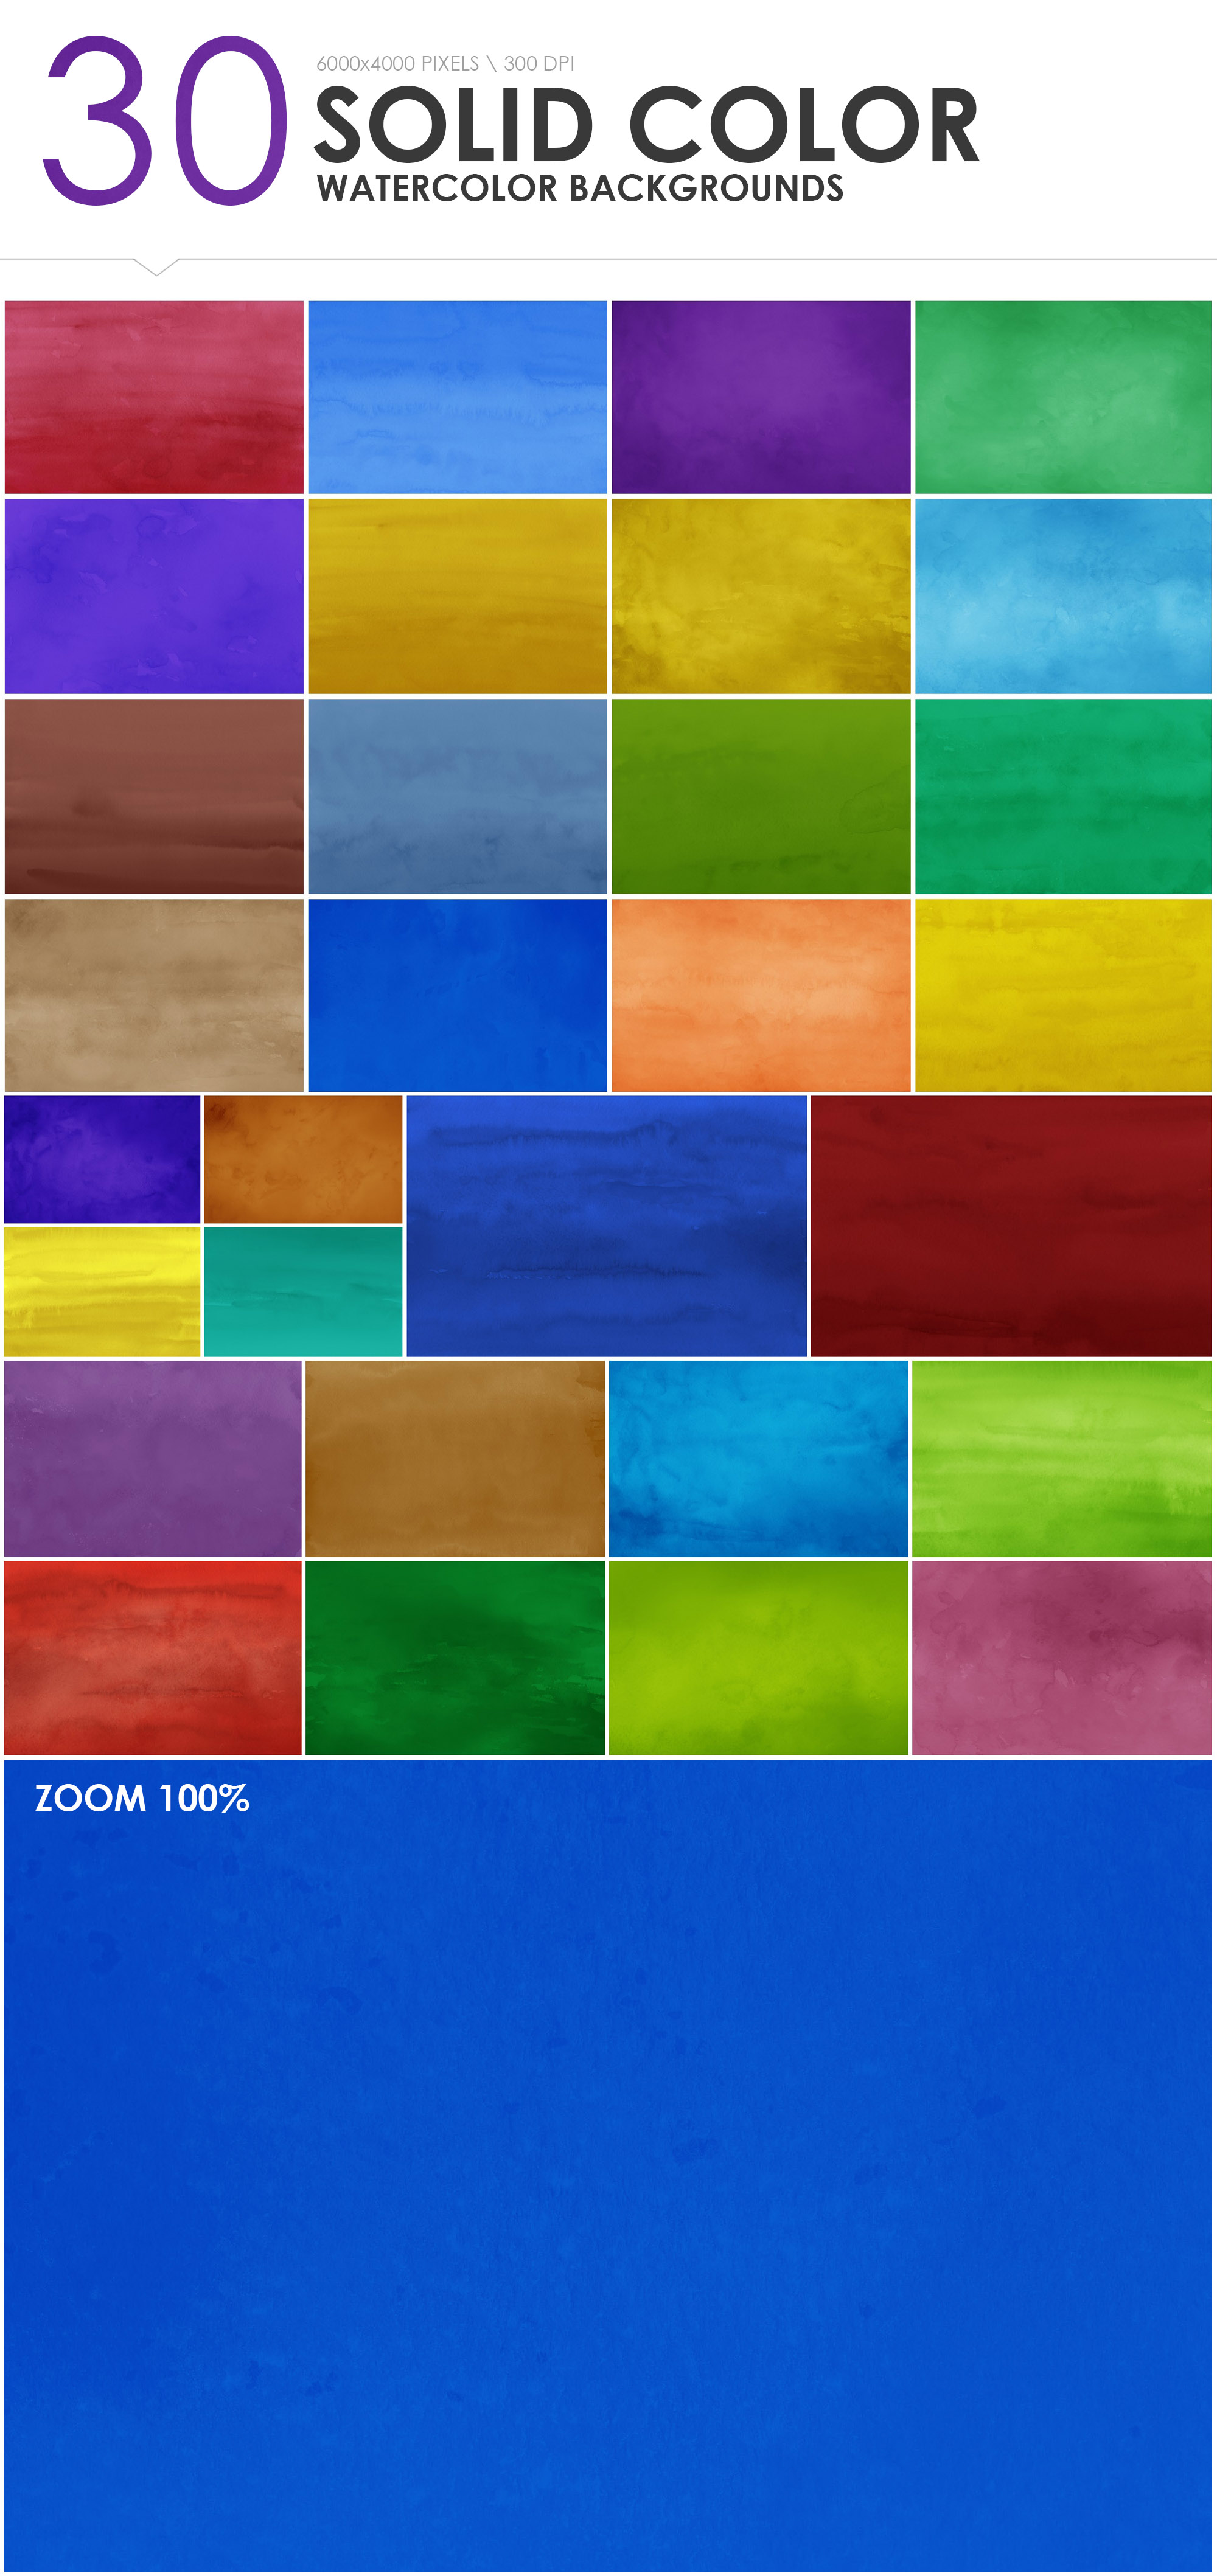 300 Diverse Watercolor Backgrounds example image 9